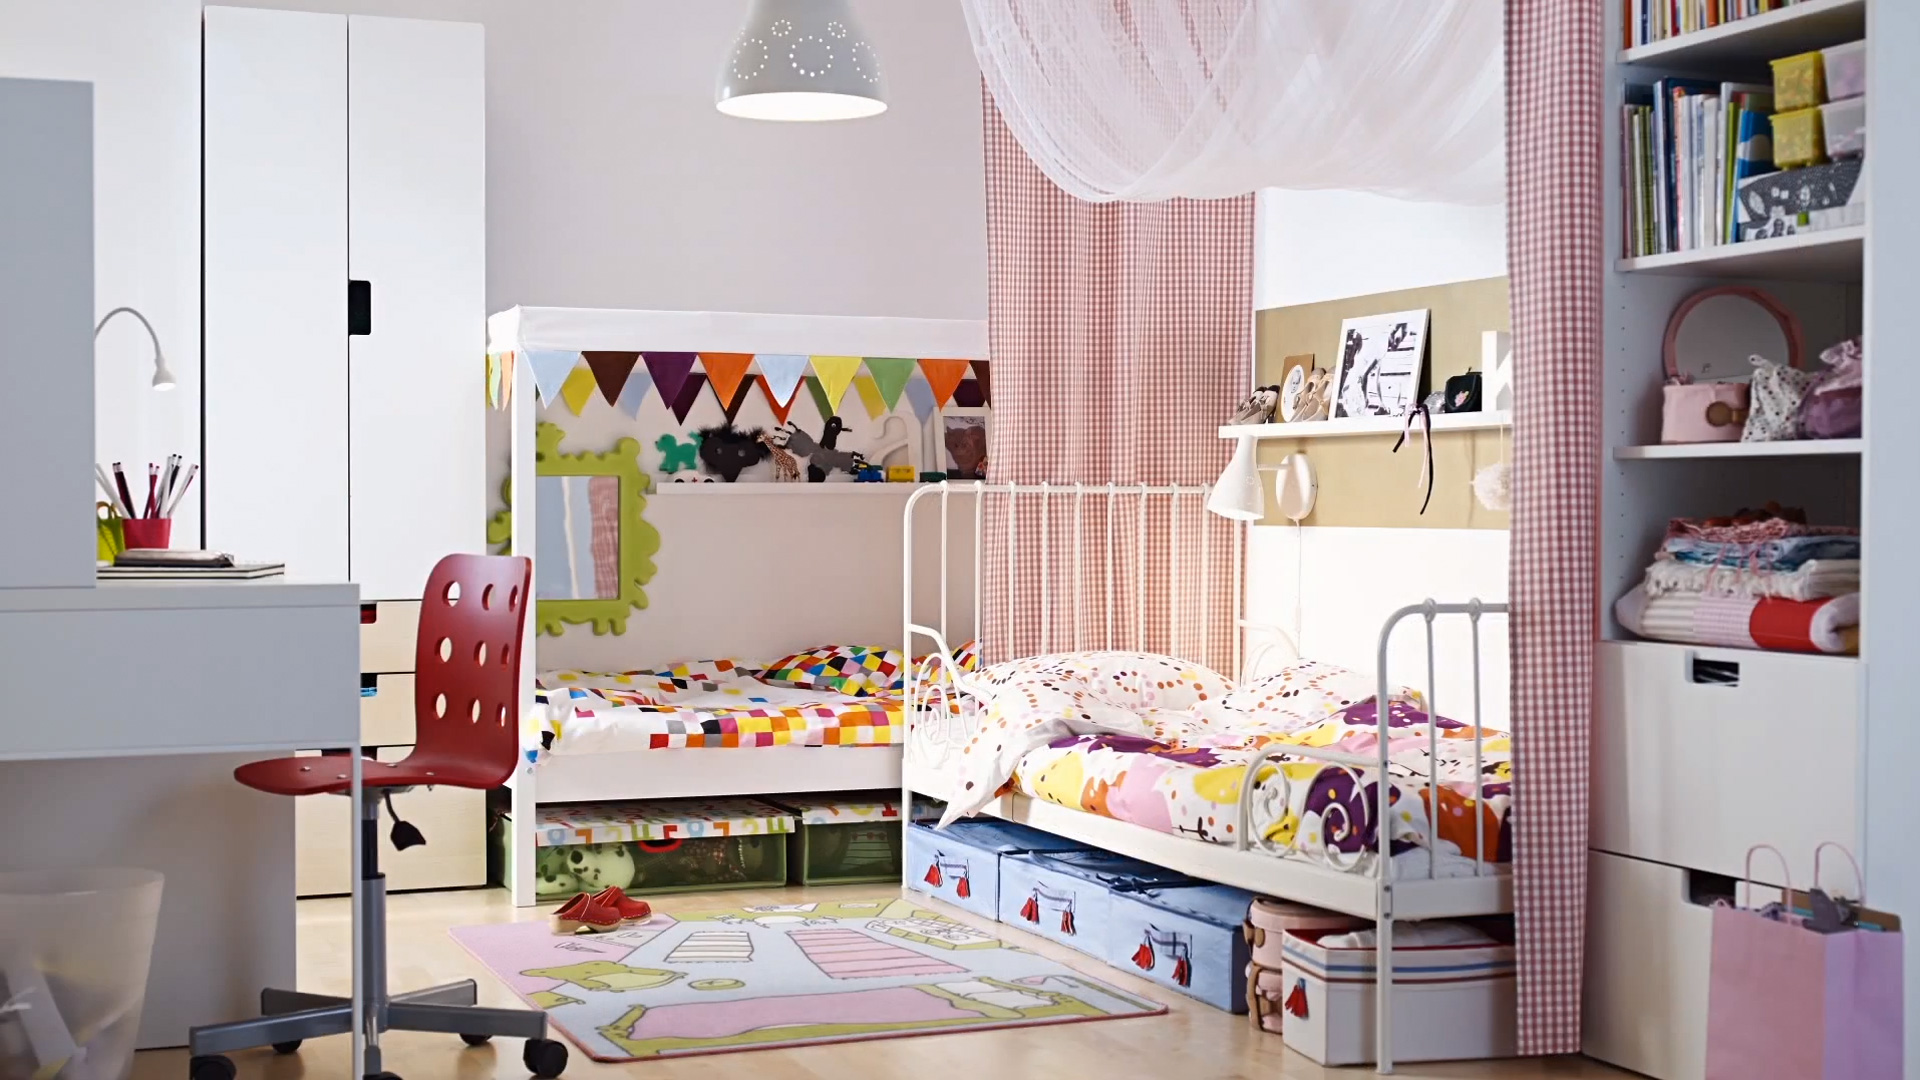 kids-shared-bedroom-two-ikea-beds-in-an-l-shape-with-fabric-room-kids-room-ideas-ikea-ikea-childrens-furniture